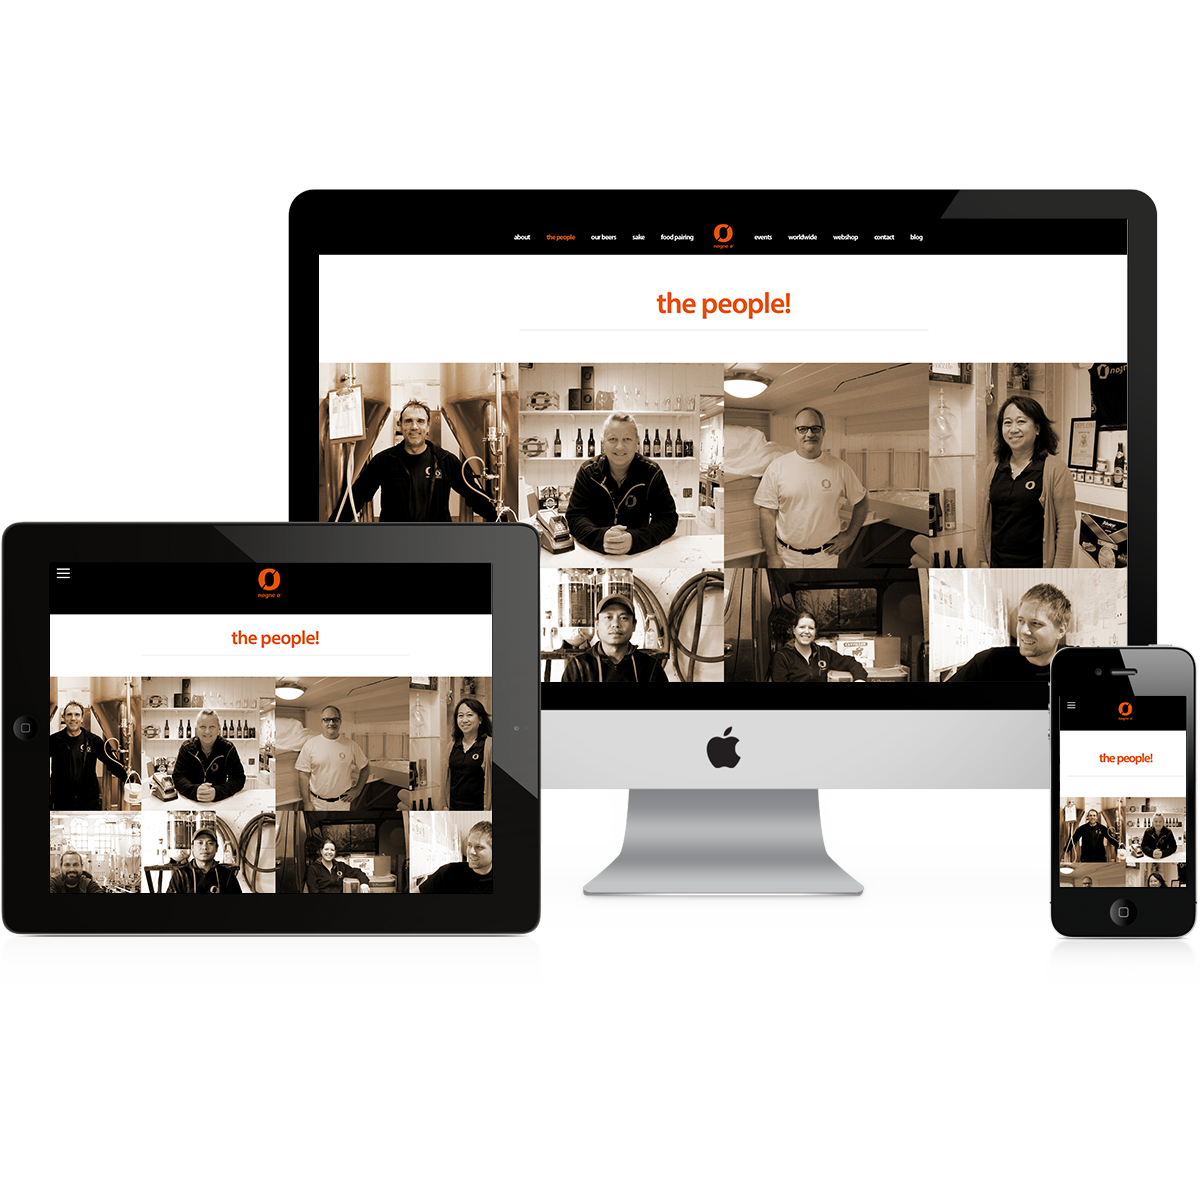 Responsive web design - Our services:-Website design- Squarespace implementation- Squarespace Developer Mode- Custom HTML and CSS- E-commerce with Stripe Technology